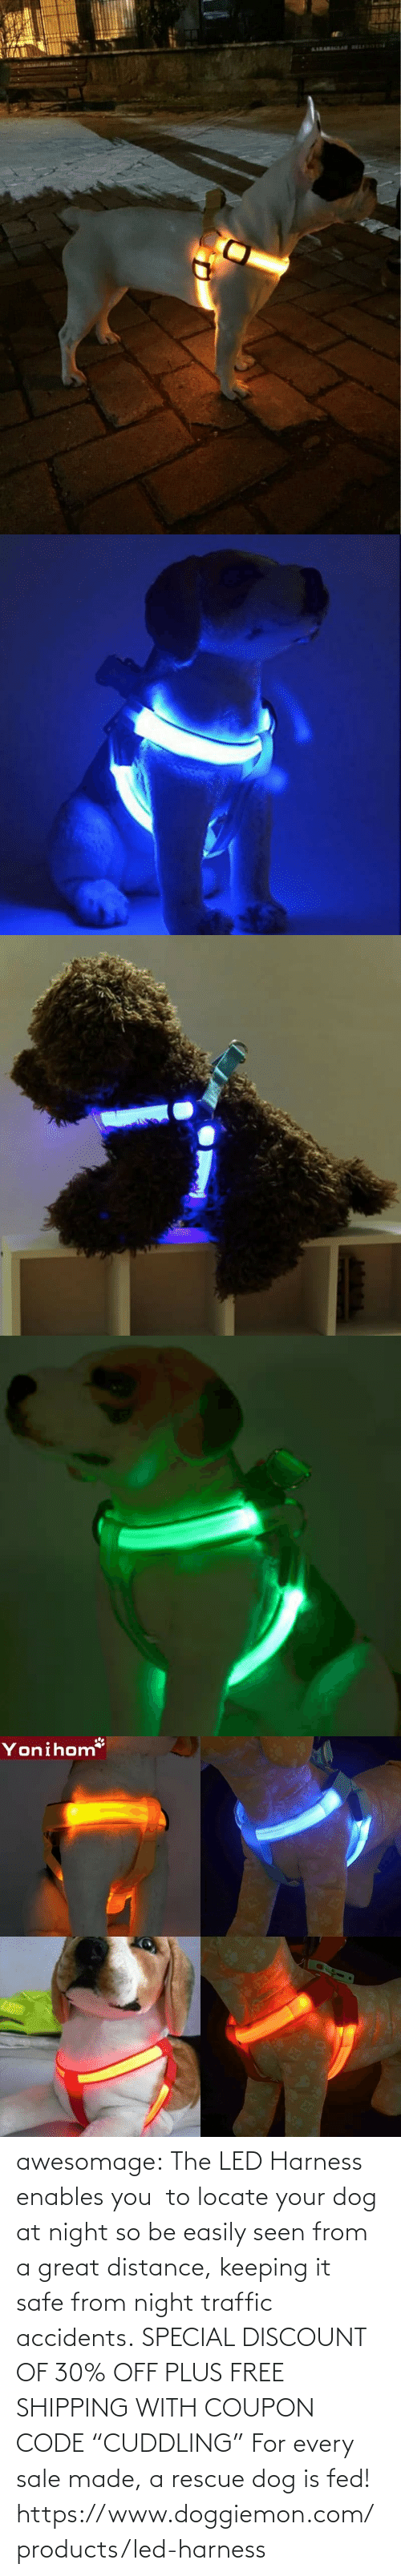 "great: awesomage:   The LED Harness enables you  to locate your dog at night so be easily seen from a great distance, keeping it safe from night traffic accidents. SPECIAL DISCOUNT OF 30% OFF PLUS FREE SHIPPING WITH COUPON CODE ""CUDDLING"" For every sale made, a rescue dog is fed!   https://www.doggiemon.com/products/led-harness"